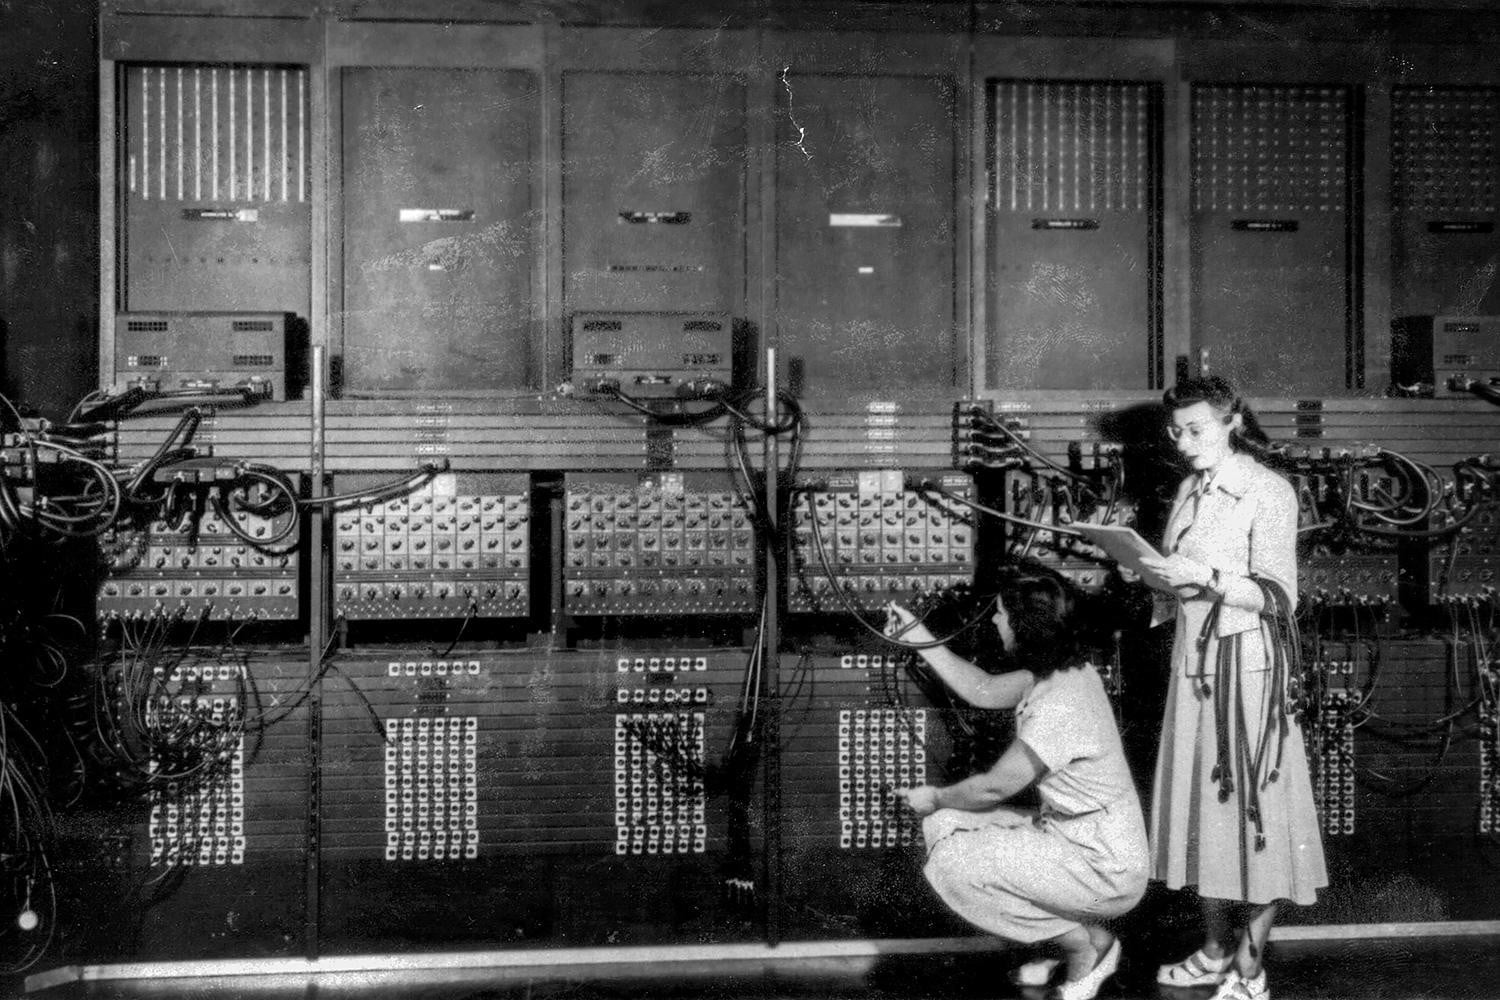 The  ENIAC , the first electronic computer, being developed at the University of Pennsylvania, 1946. (Credit: Apic/Getty Images)